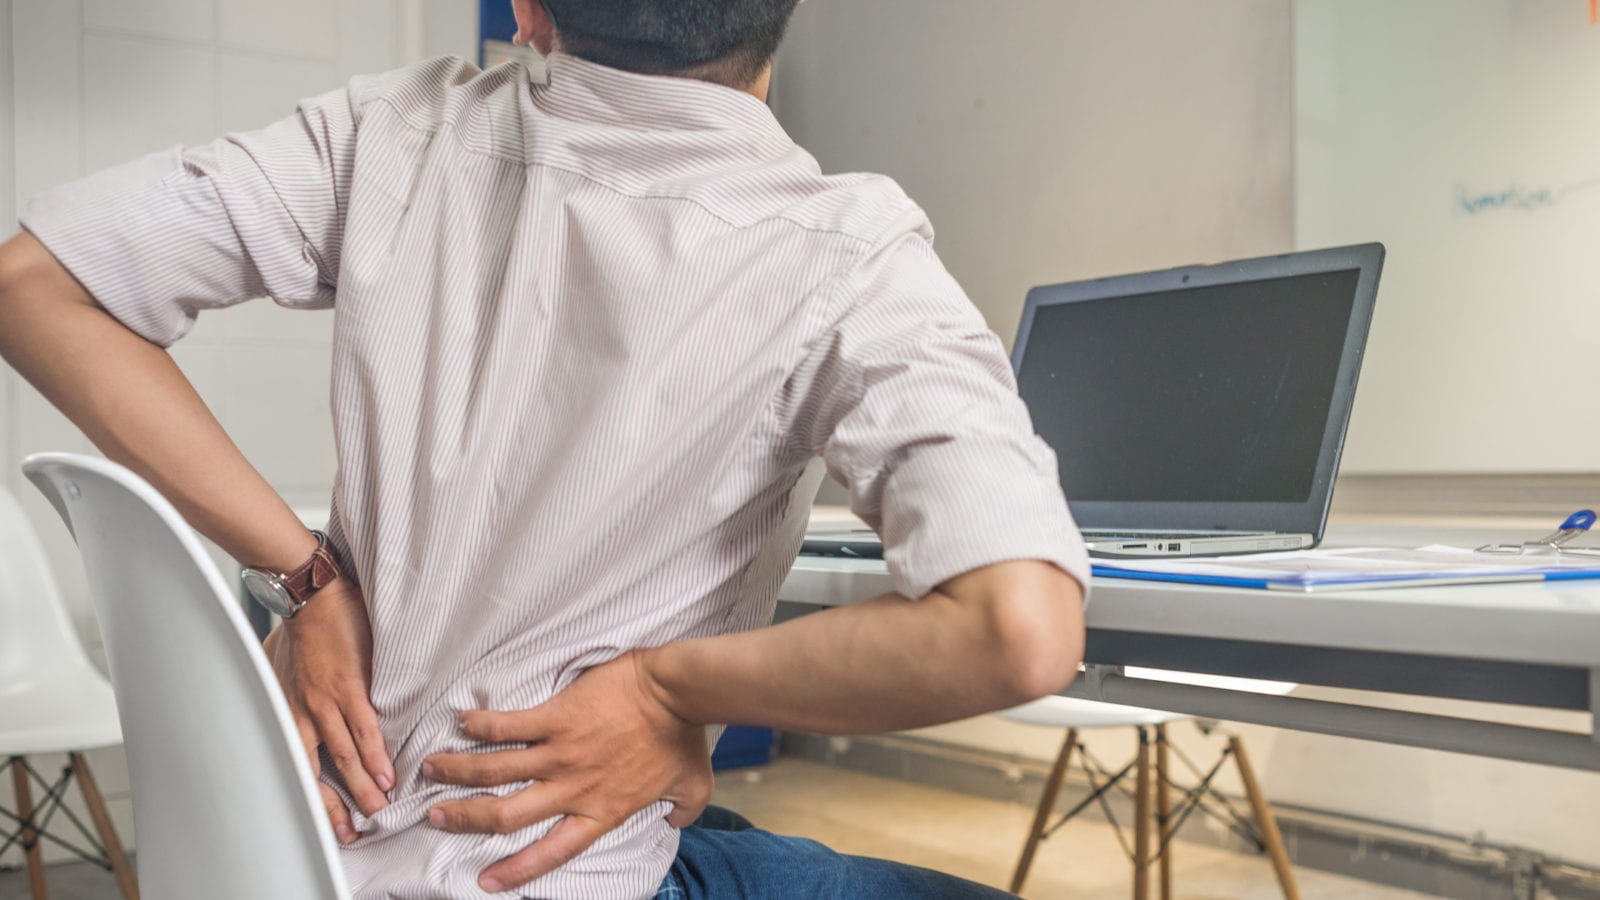 Injured Back from Car Accident Law Offices of Matthew Konecky Personal Injury Lawyer Palm Beach